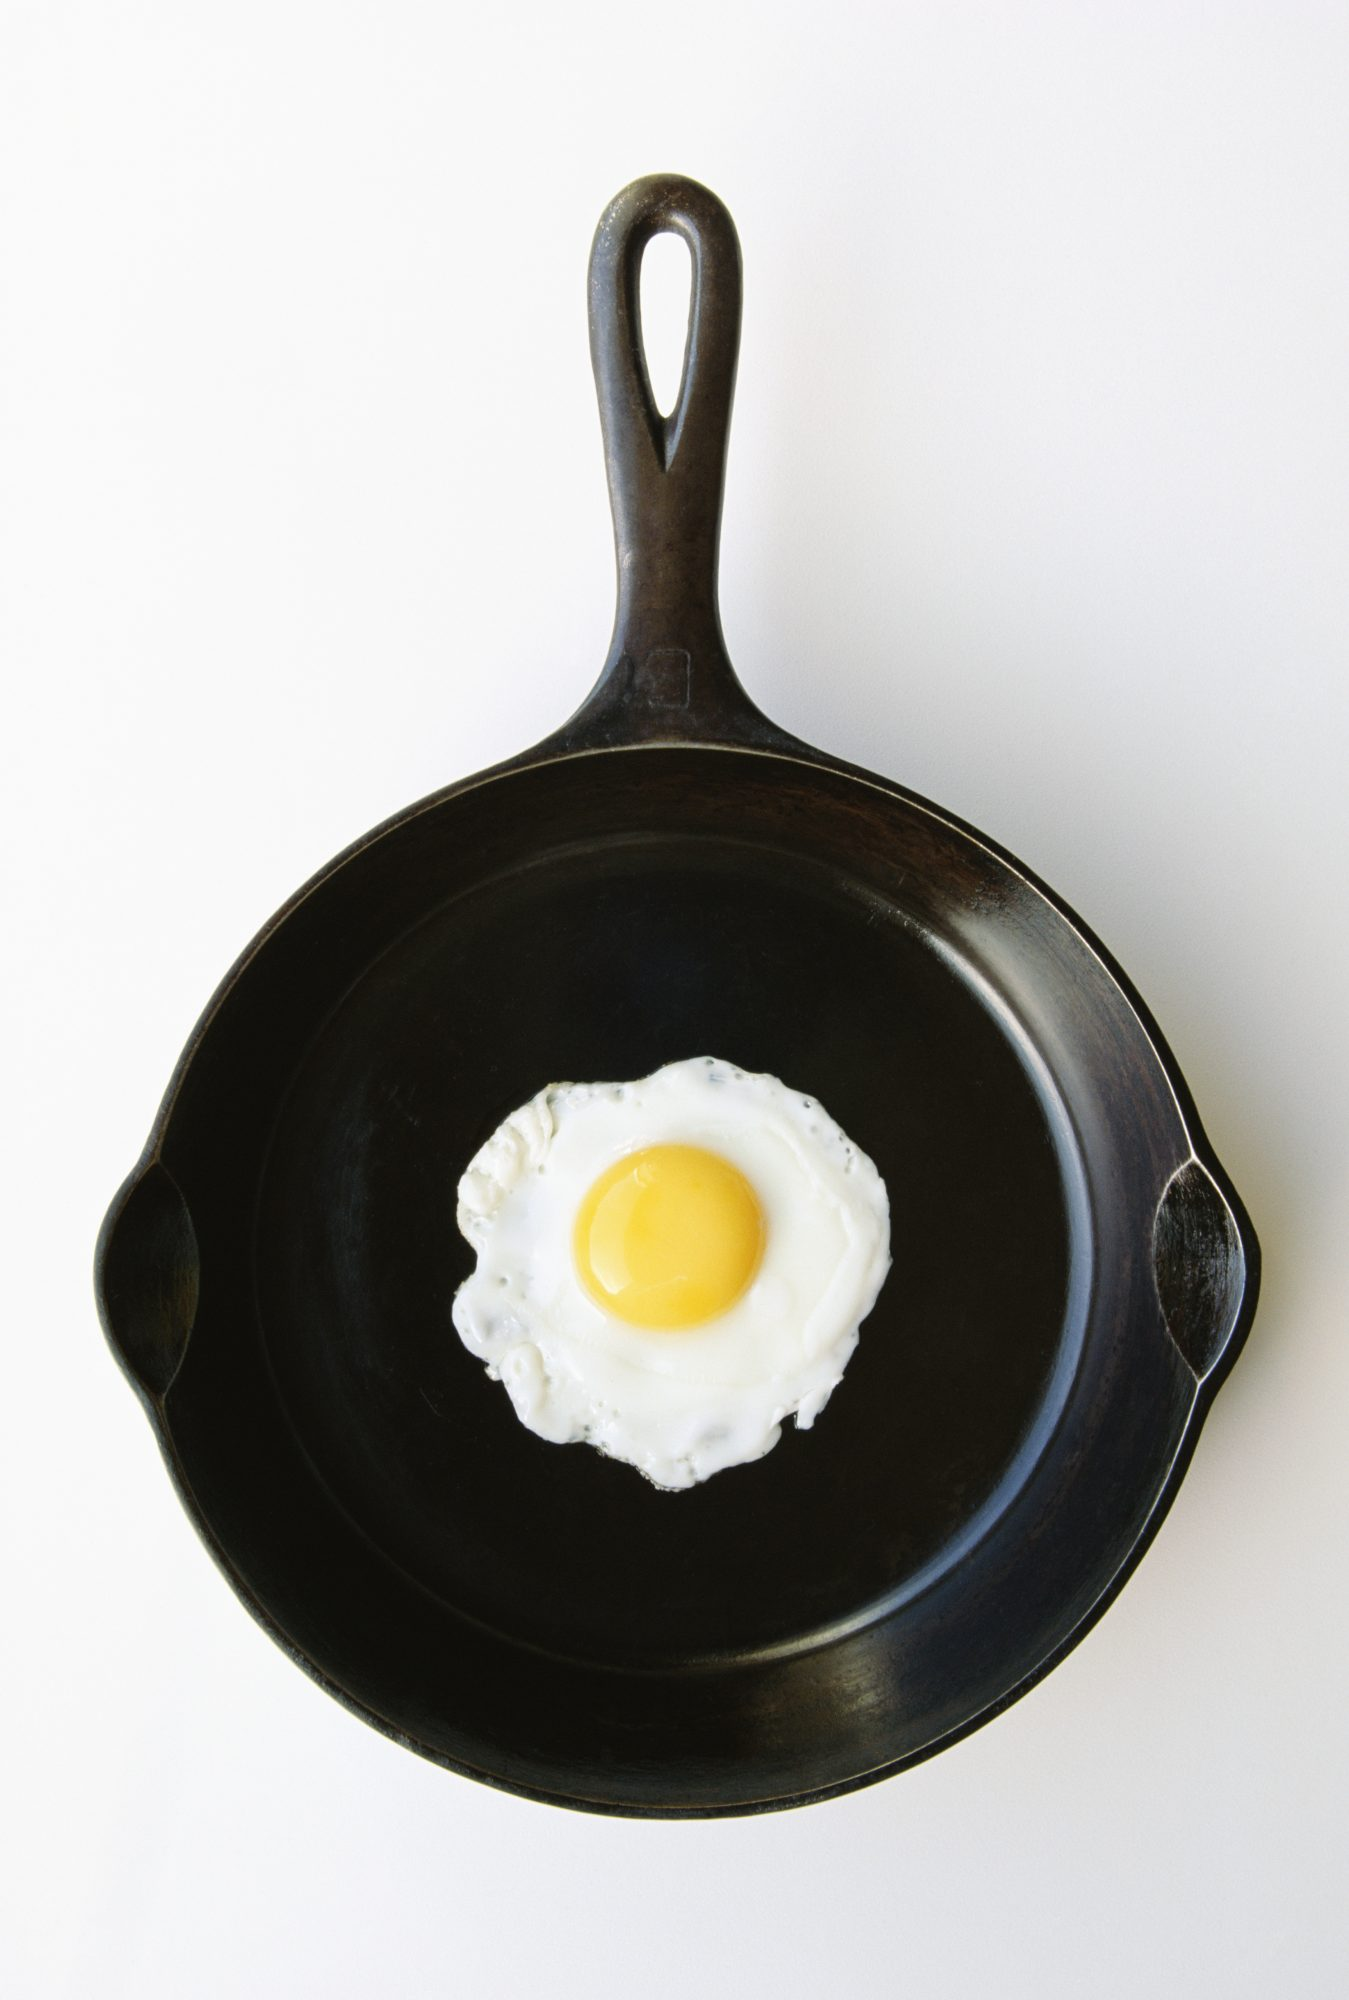 Myth #5: Maintaining a cast iron skillet is not worth the time and effort.